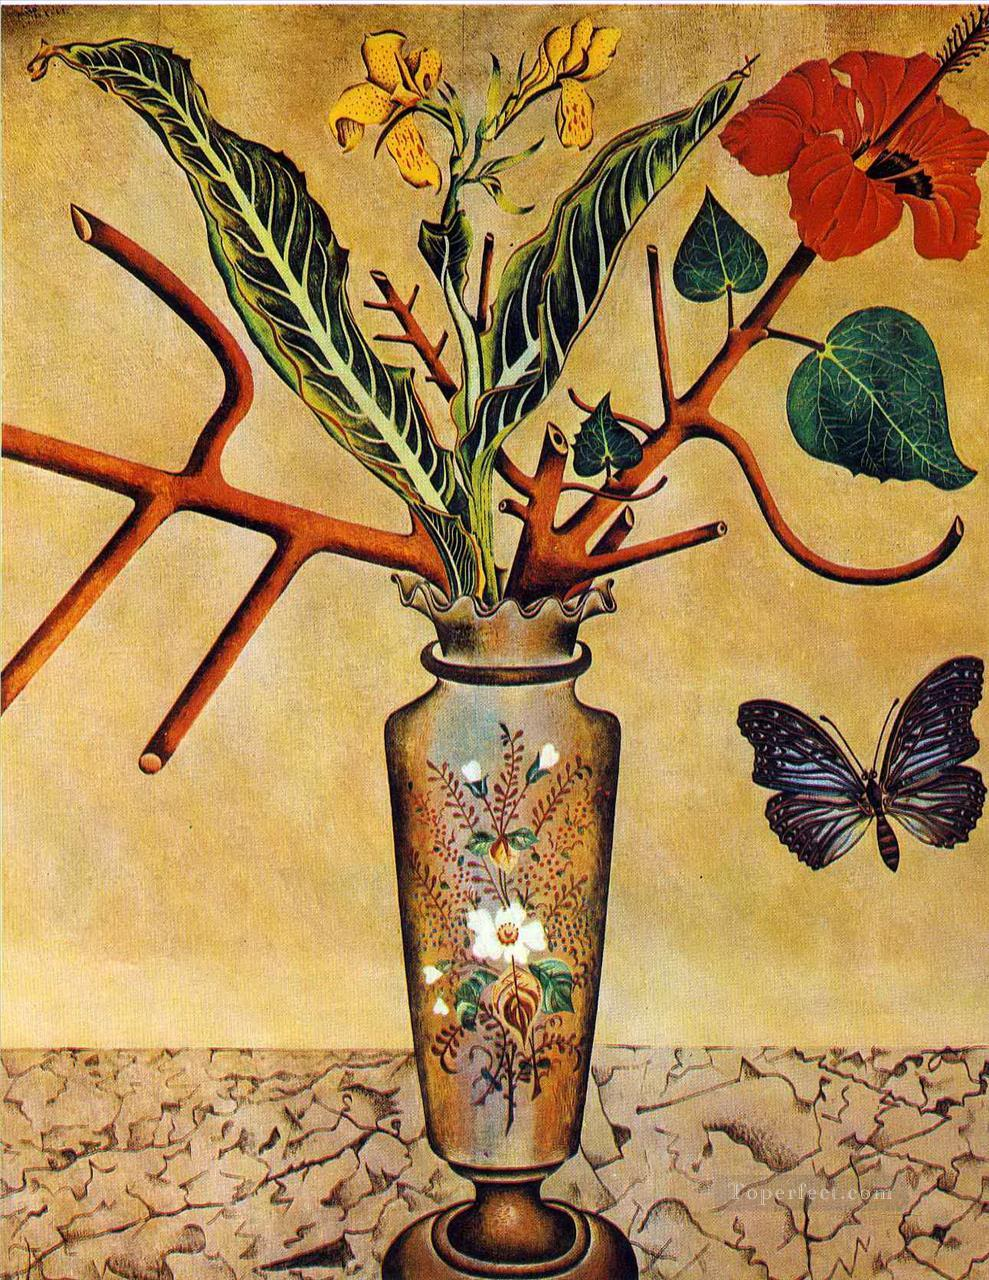 Flowers and Butterfly Dadaism Painting in Oil for Sale Dadaism Paintings